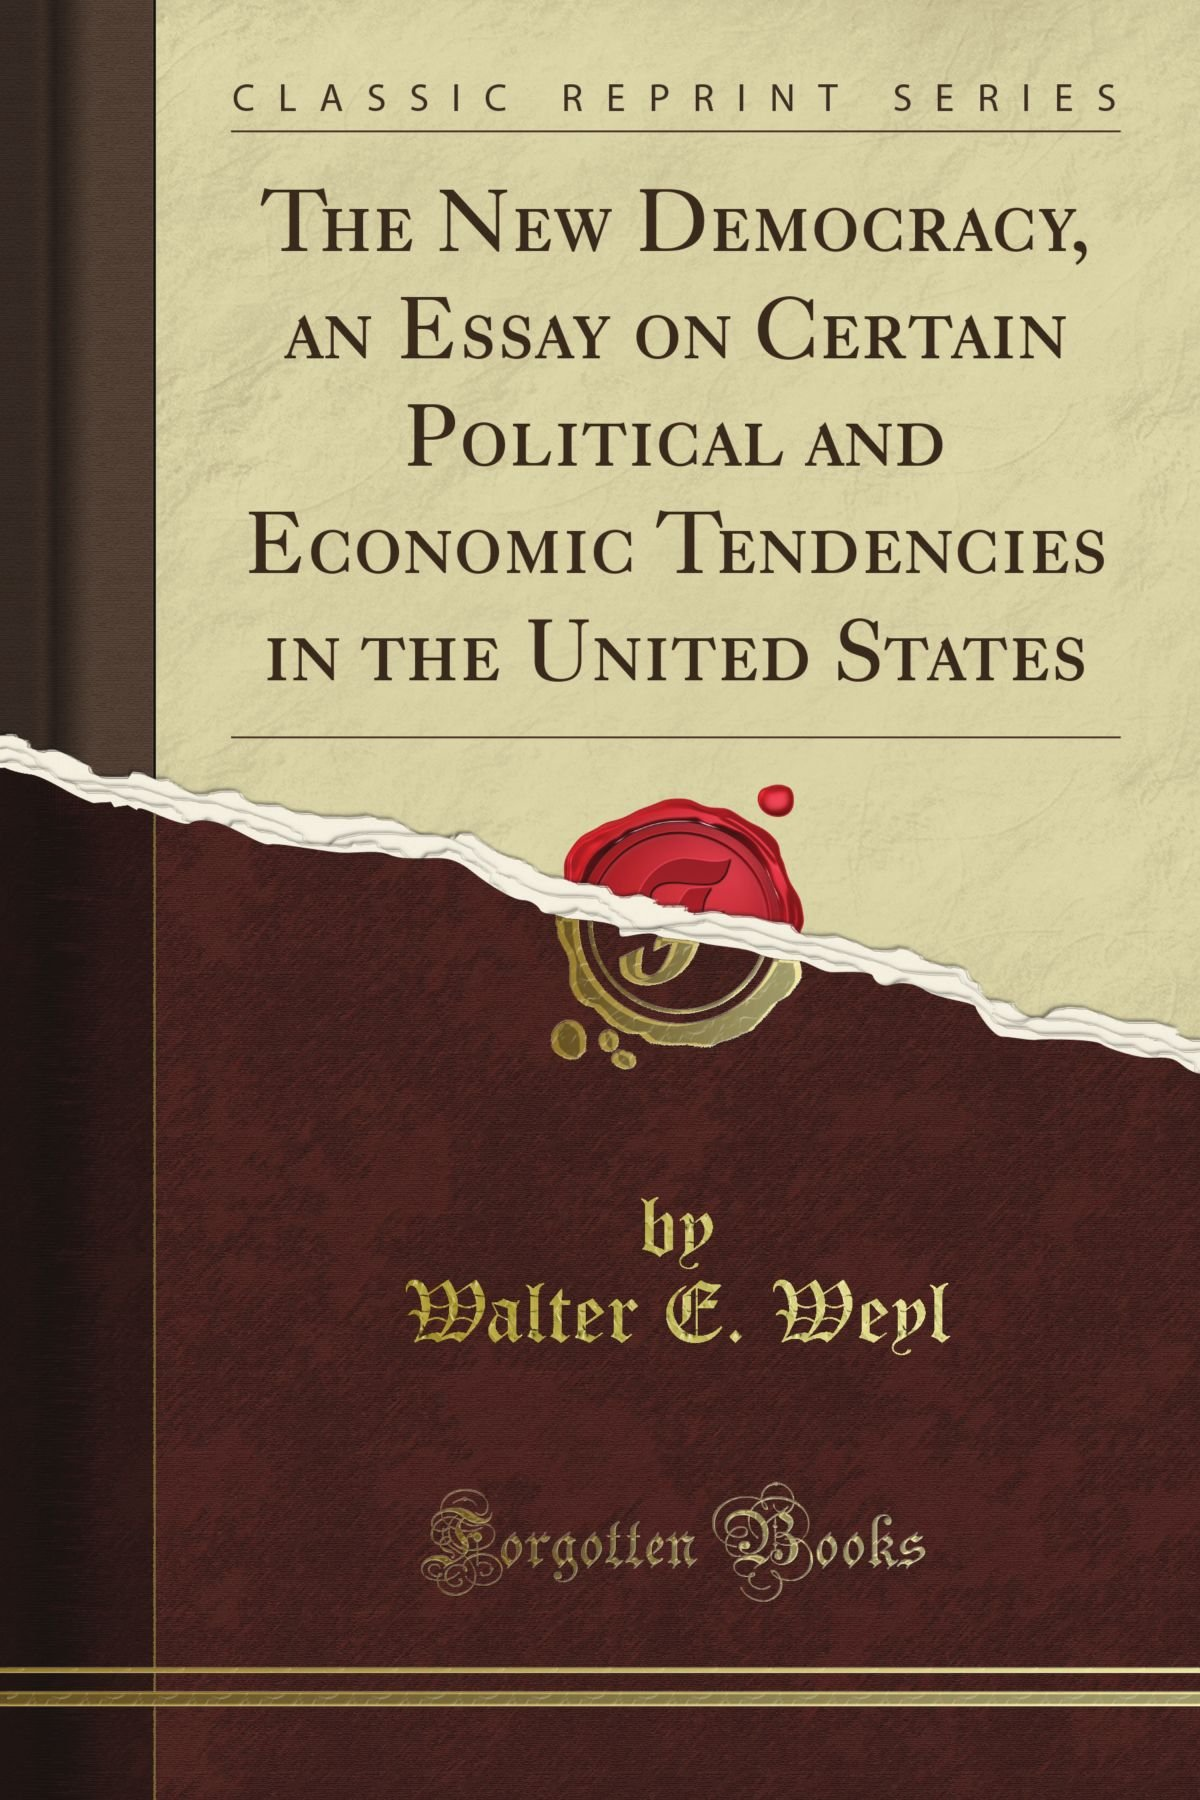 Thesis For Argumentative Essay Examples The New Democracy An Essay On Certain Political And Economic Tendencies In  The United States Classic Reprint Walter E Weyl Amazoncom Books Thesis Statement For Definition Essay also High School Scholarship Essay Examples The New Democracy An Essay On Certain Political And Economic  Healthy Mind In A Healthy Body Essay